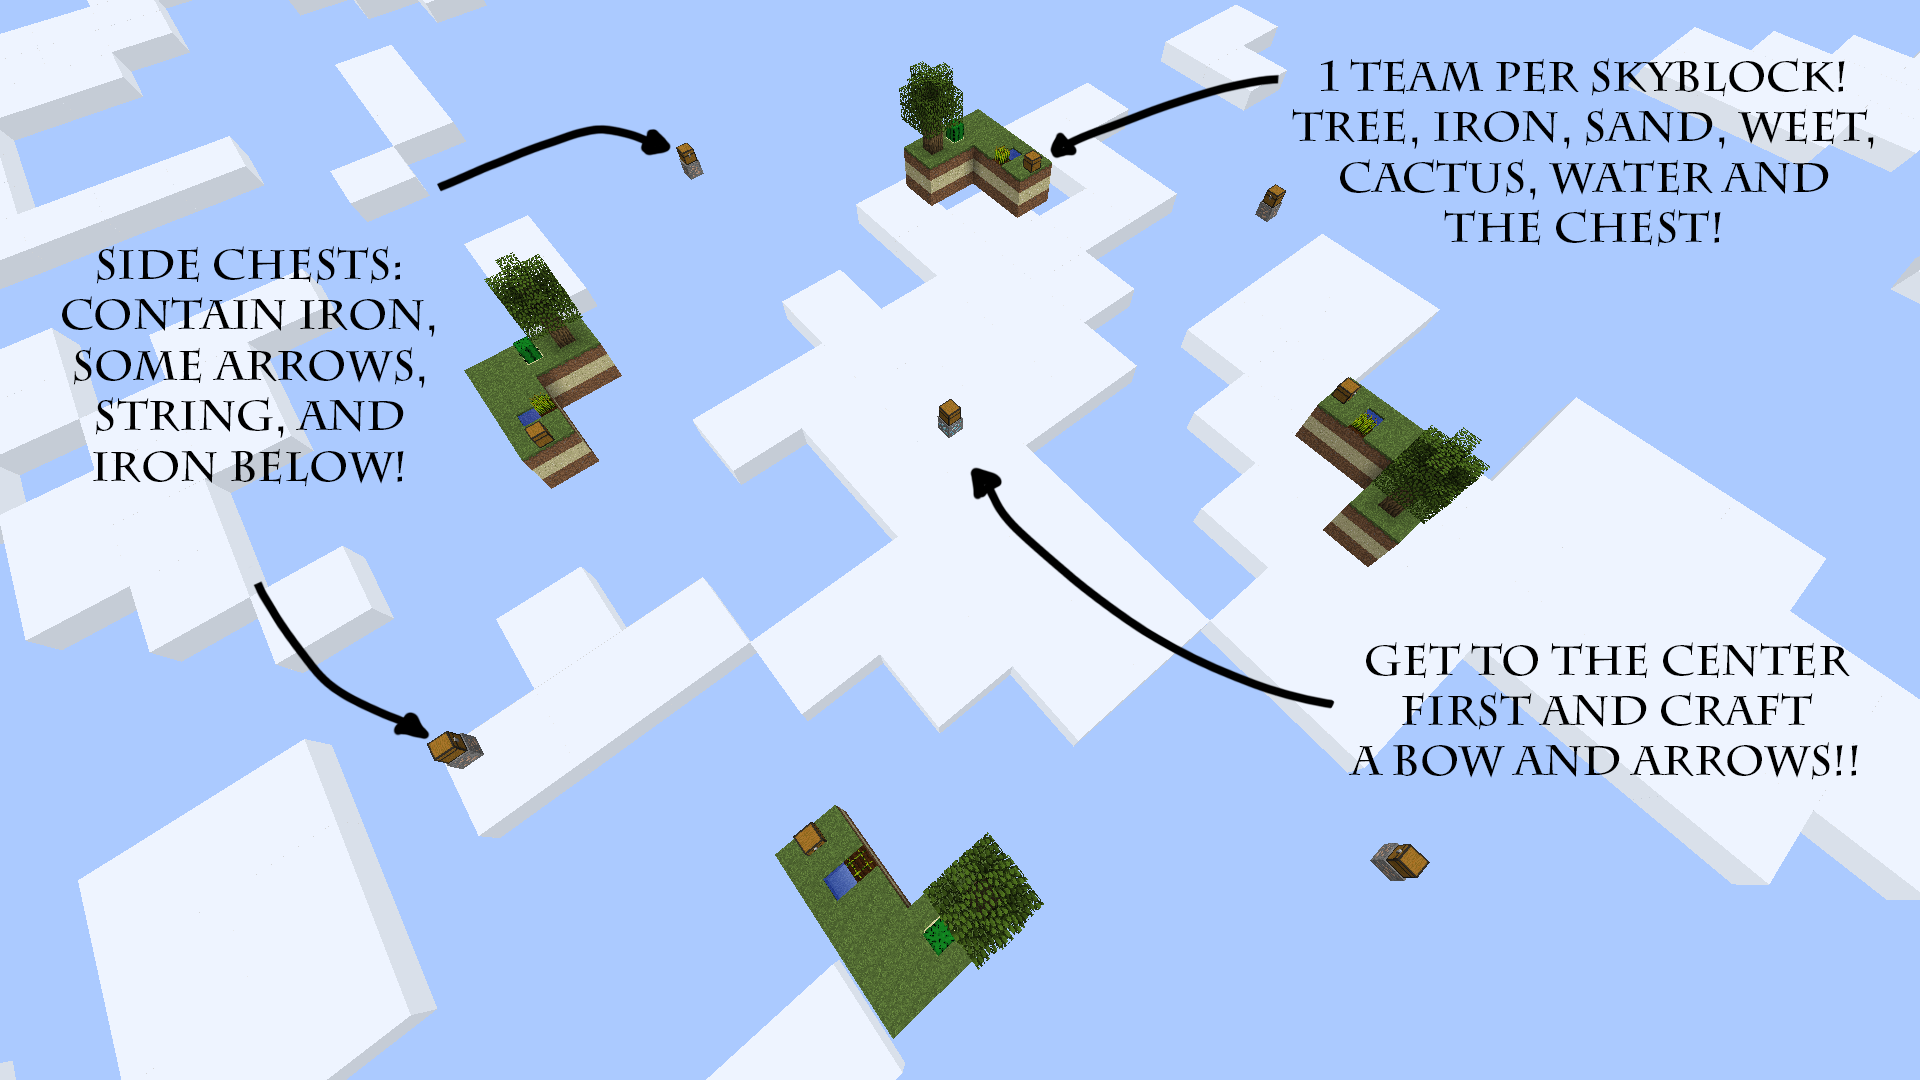 http://img.niceminecraft.net/Map/Skyblock-Warriors-Map-2.png